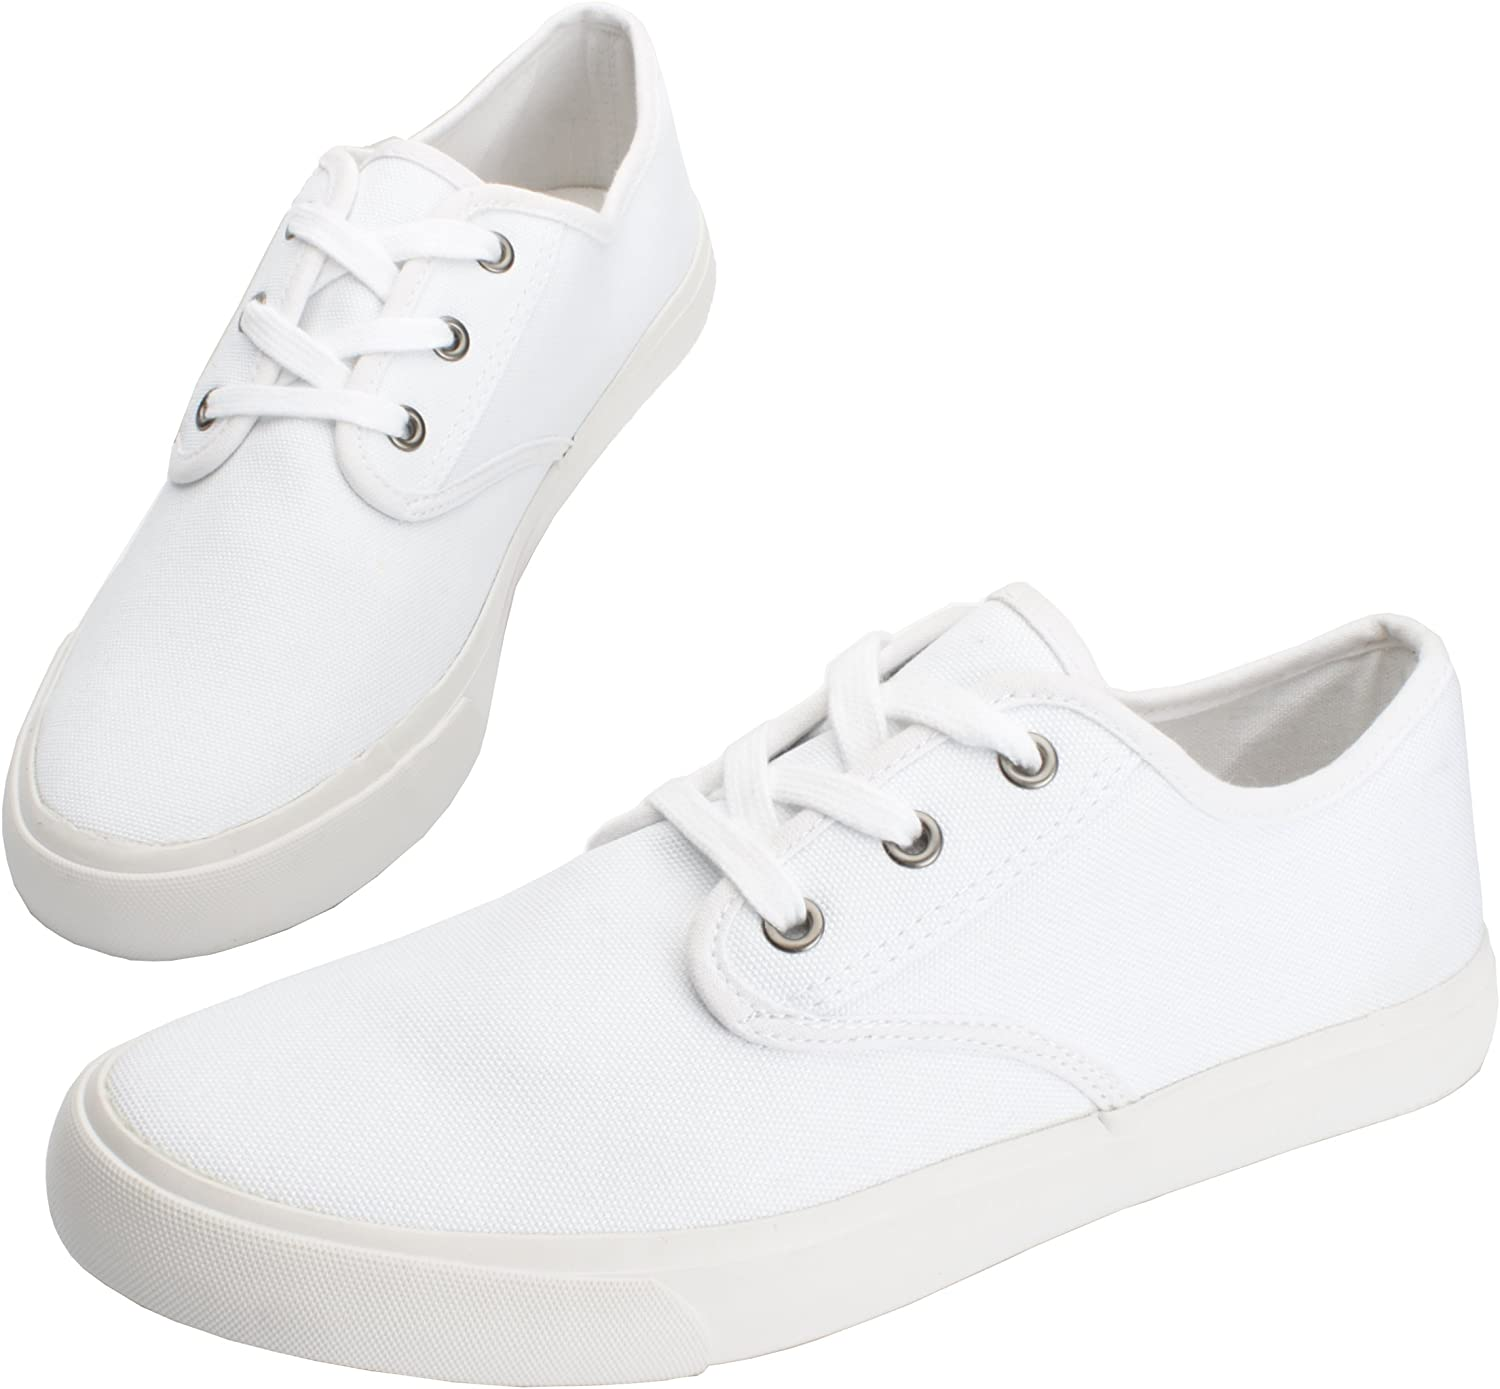 Fear0 Mens Everyday Classic White Casual Sneakers Walking Tennis Shoes